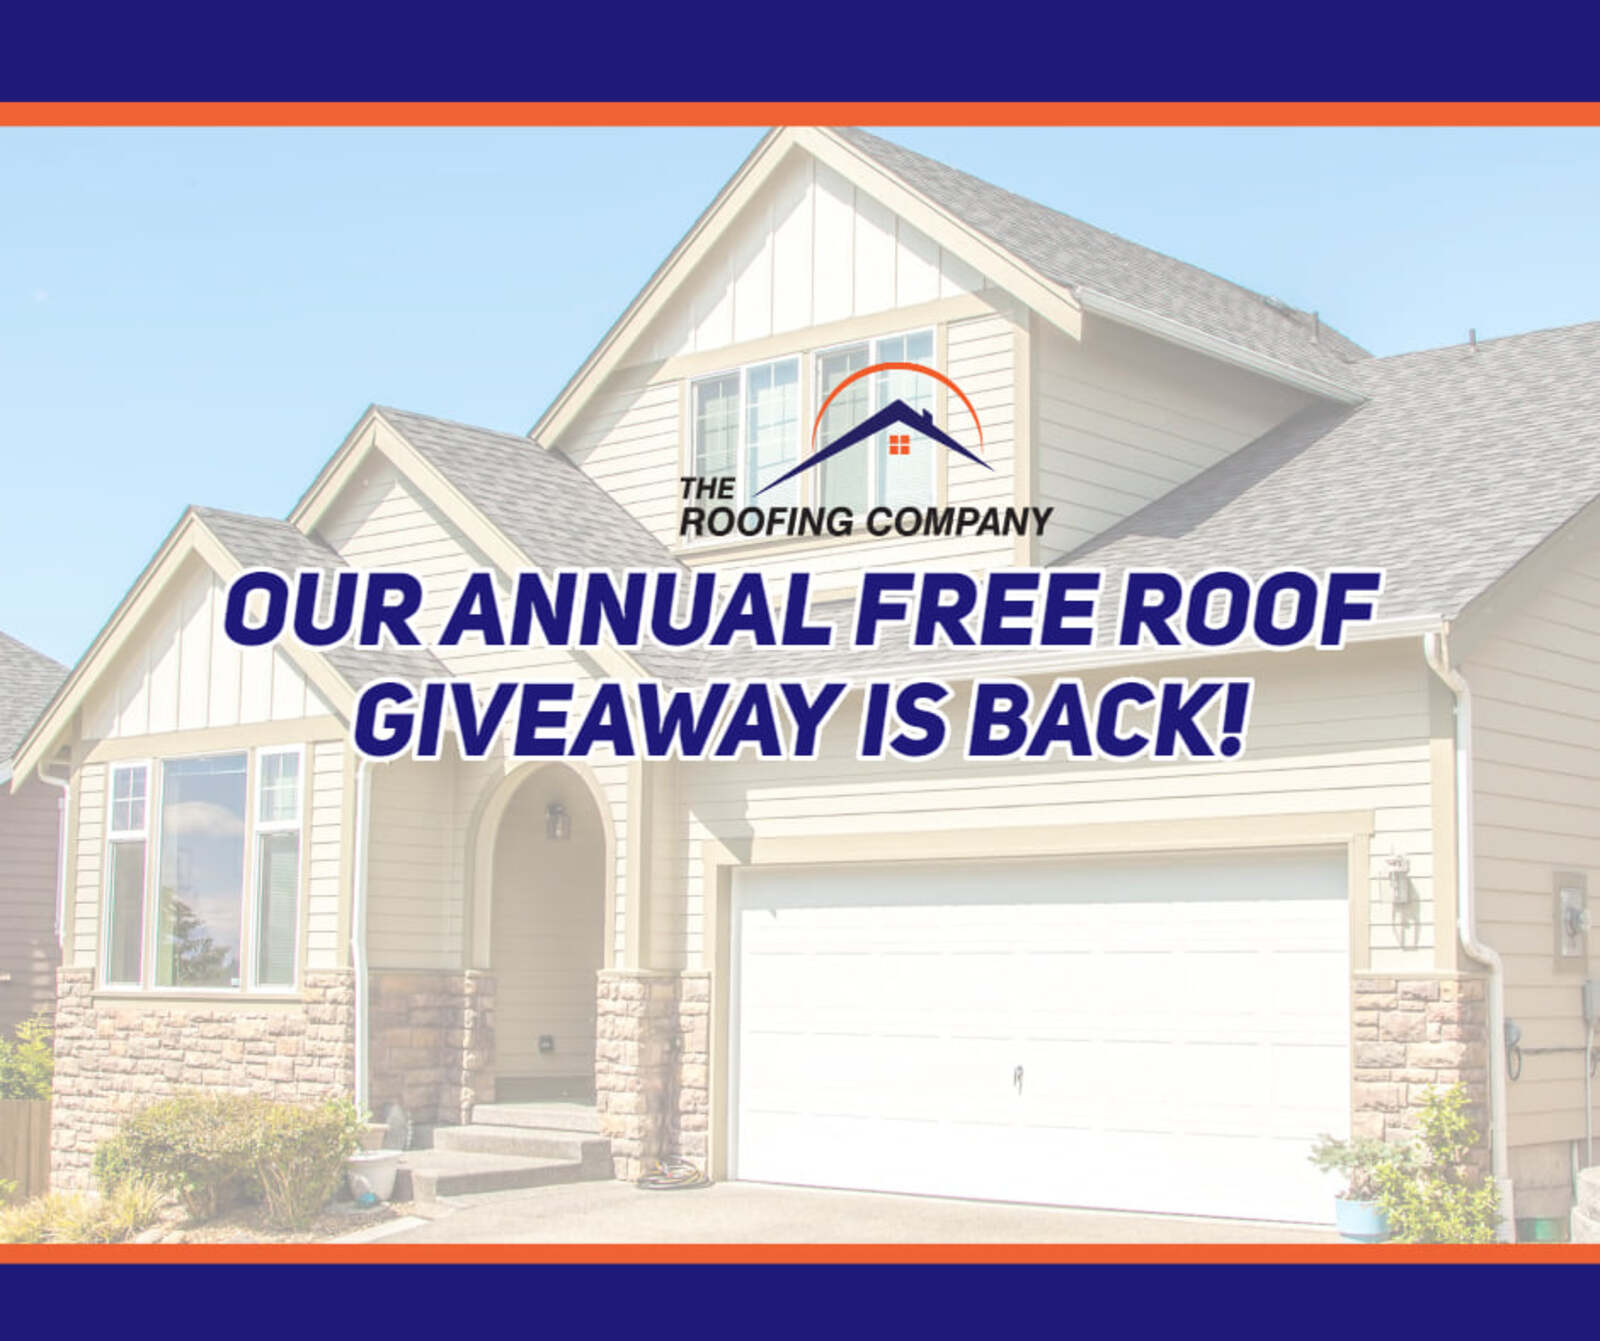 Brantford Roofing Company Announces 4th Annual FREE ROOF GIVEAWAY